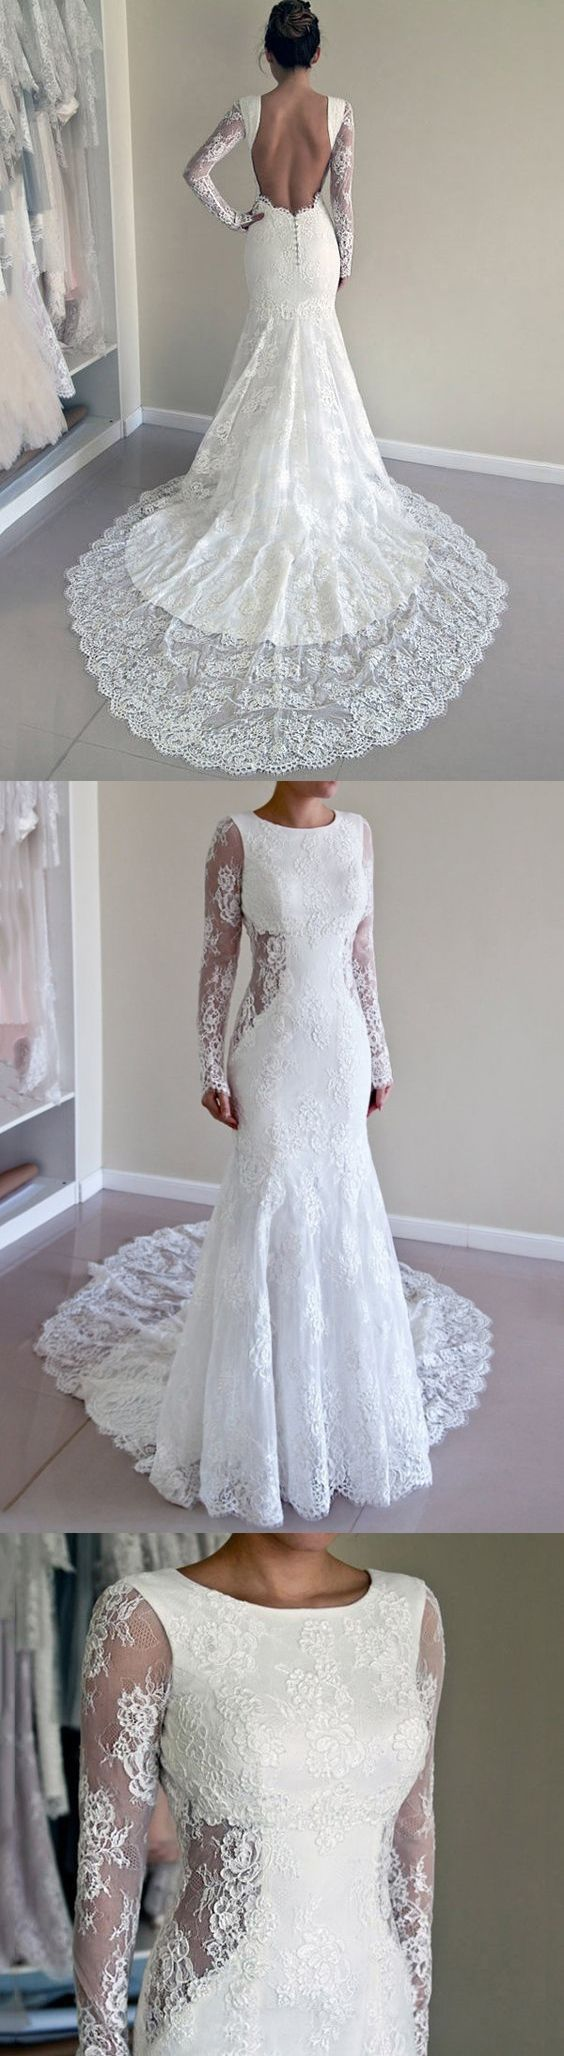 Lace wedding dress open back mermaid  Sexy Wedding Dresses Scoop Backless Sweep Train Ivory Lace Mermaid